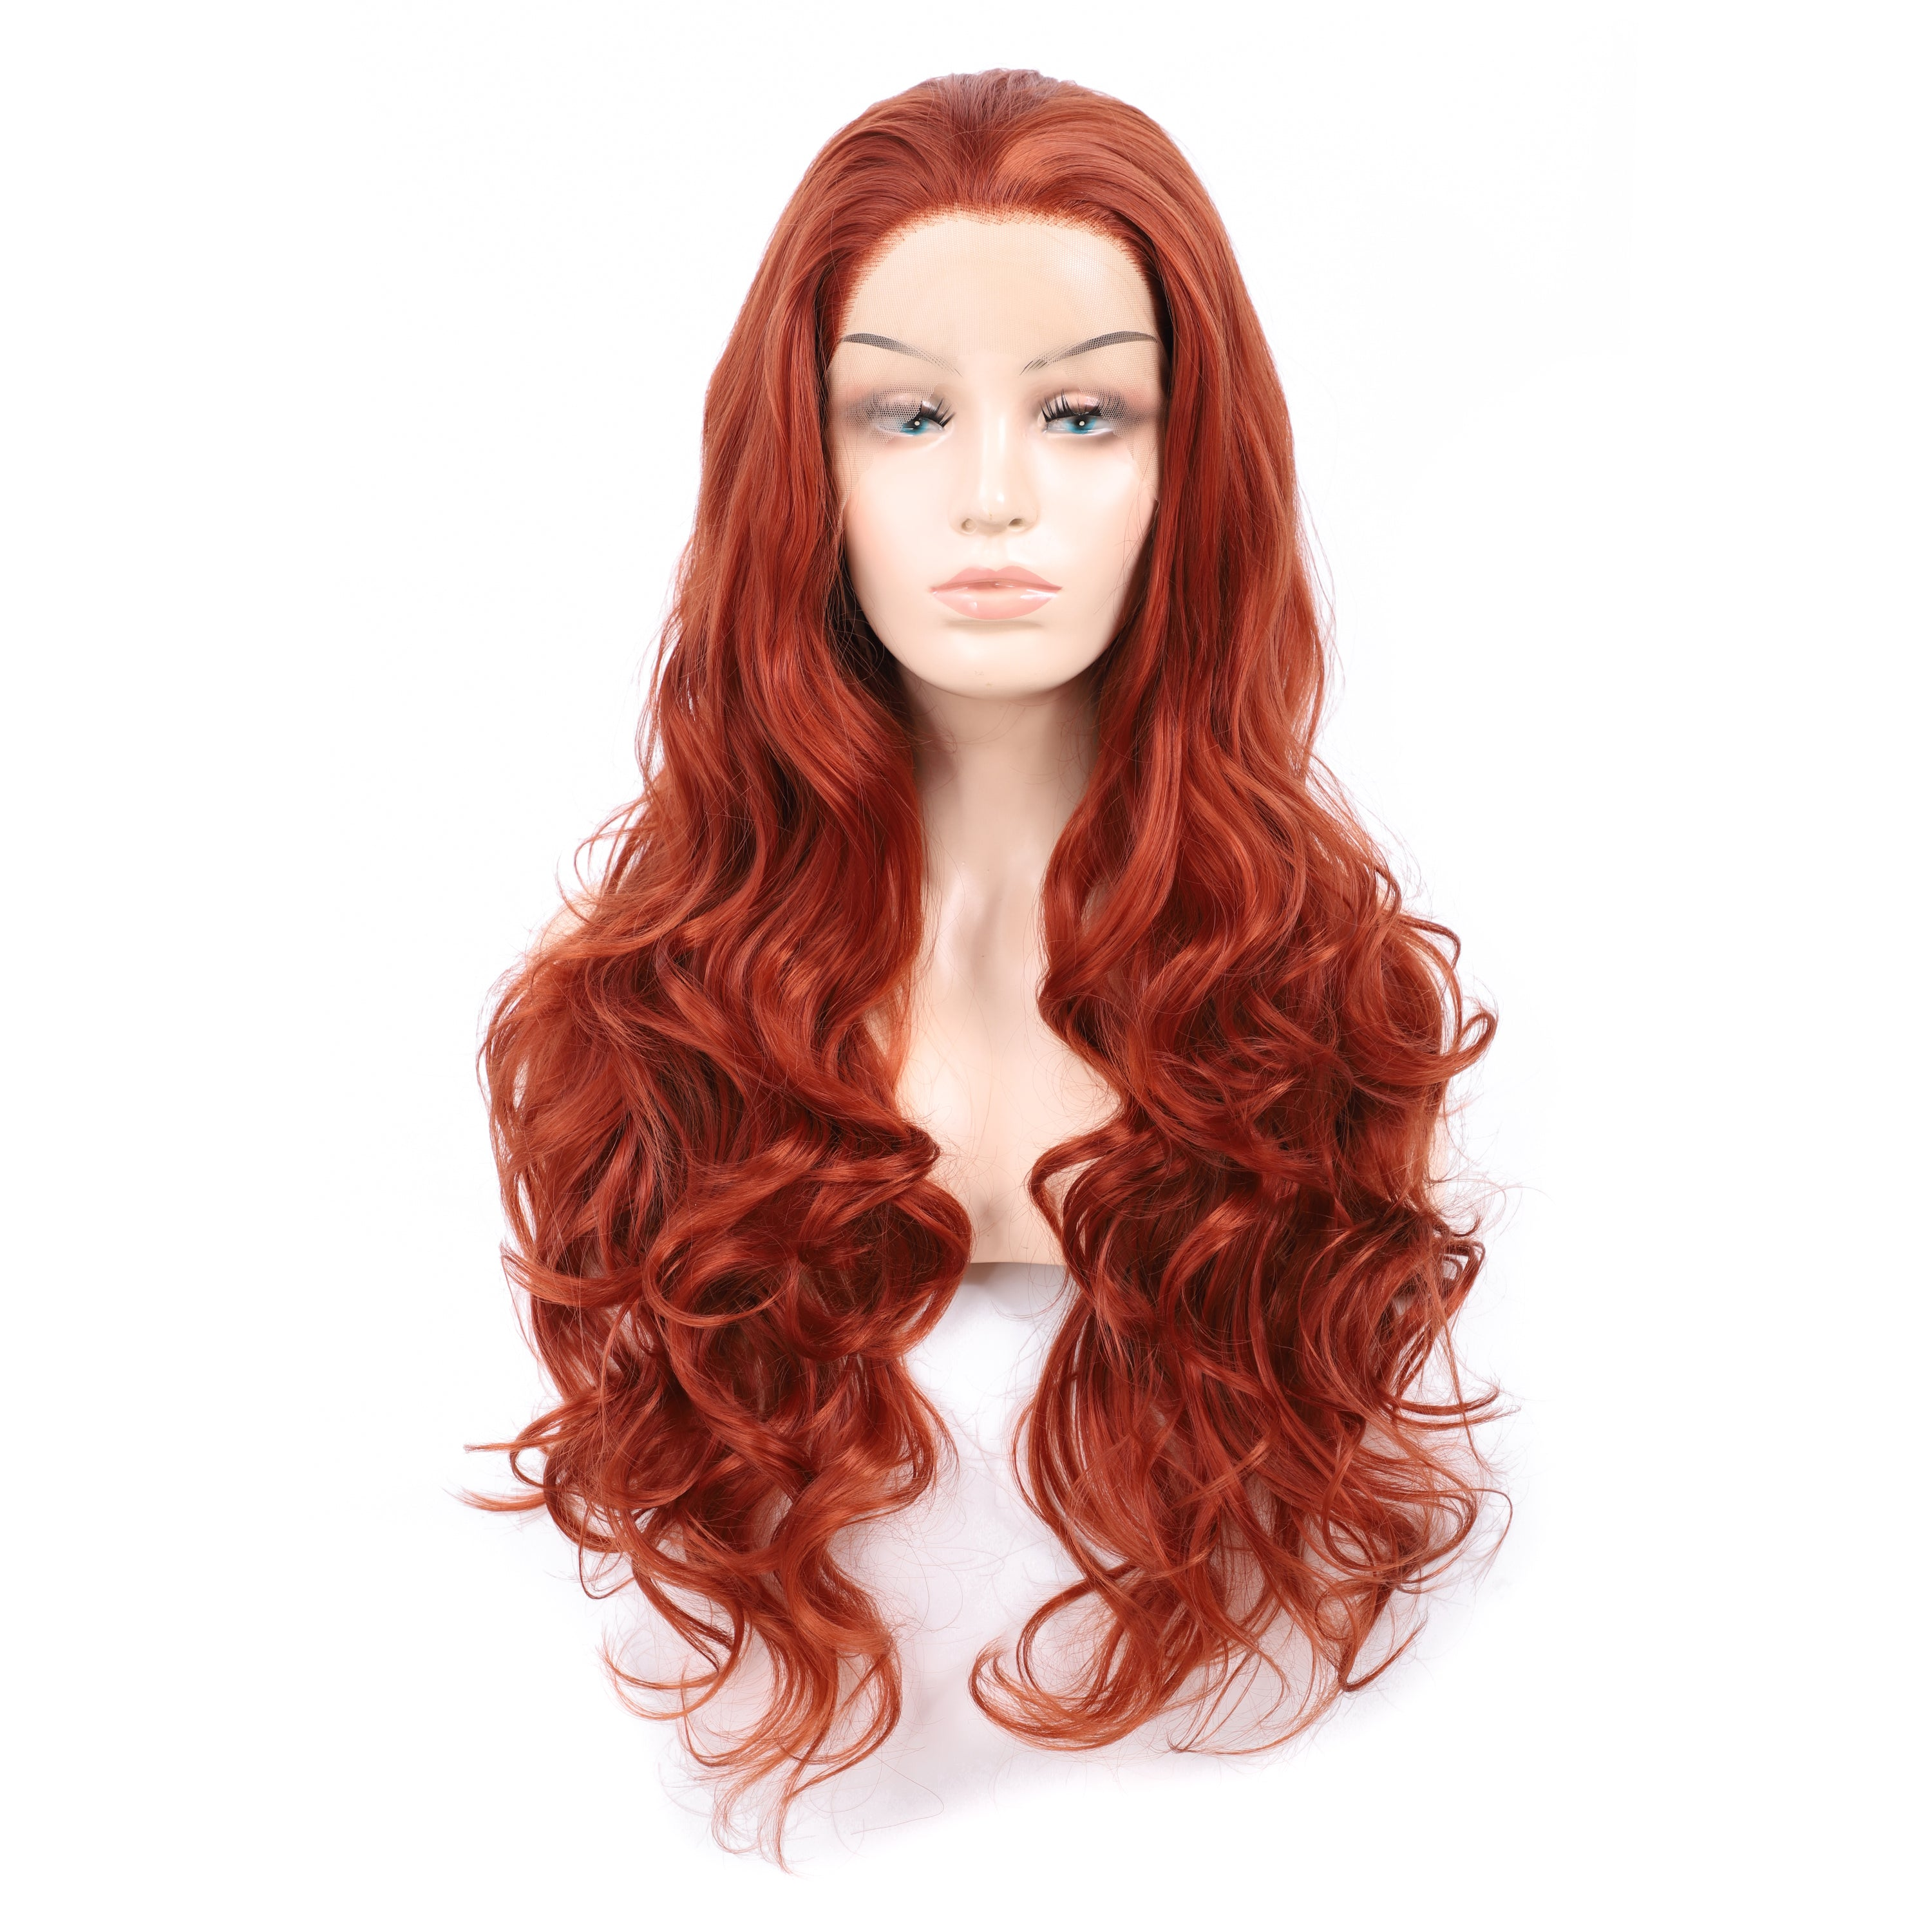 26 Inch Lace Front Long Wavy Heat Resistant Synthetic Copper Red Cosplay Middle Part Wig for Women